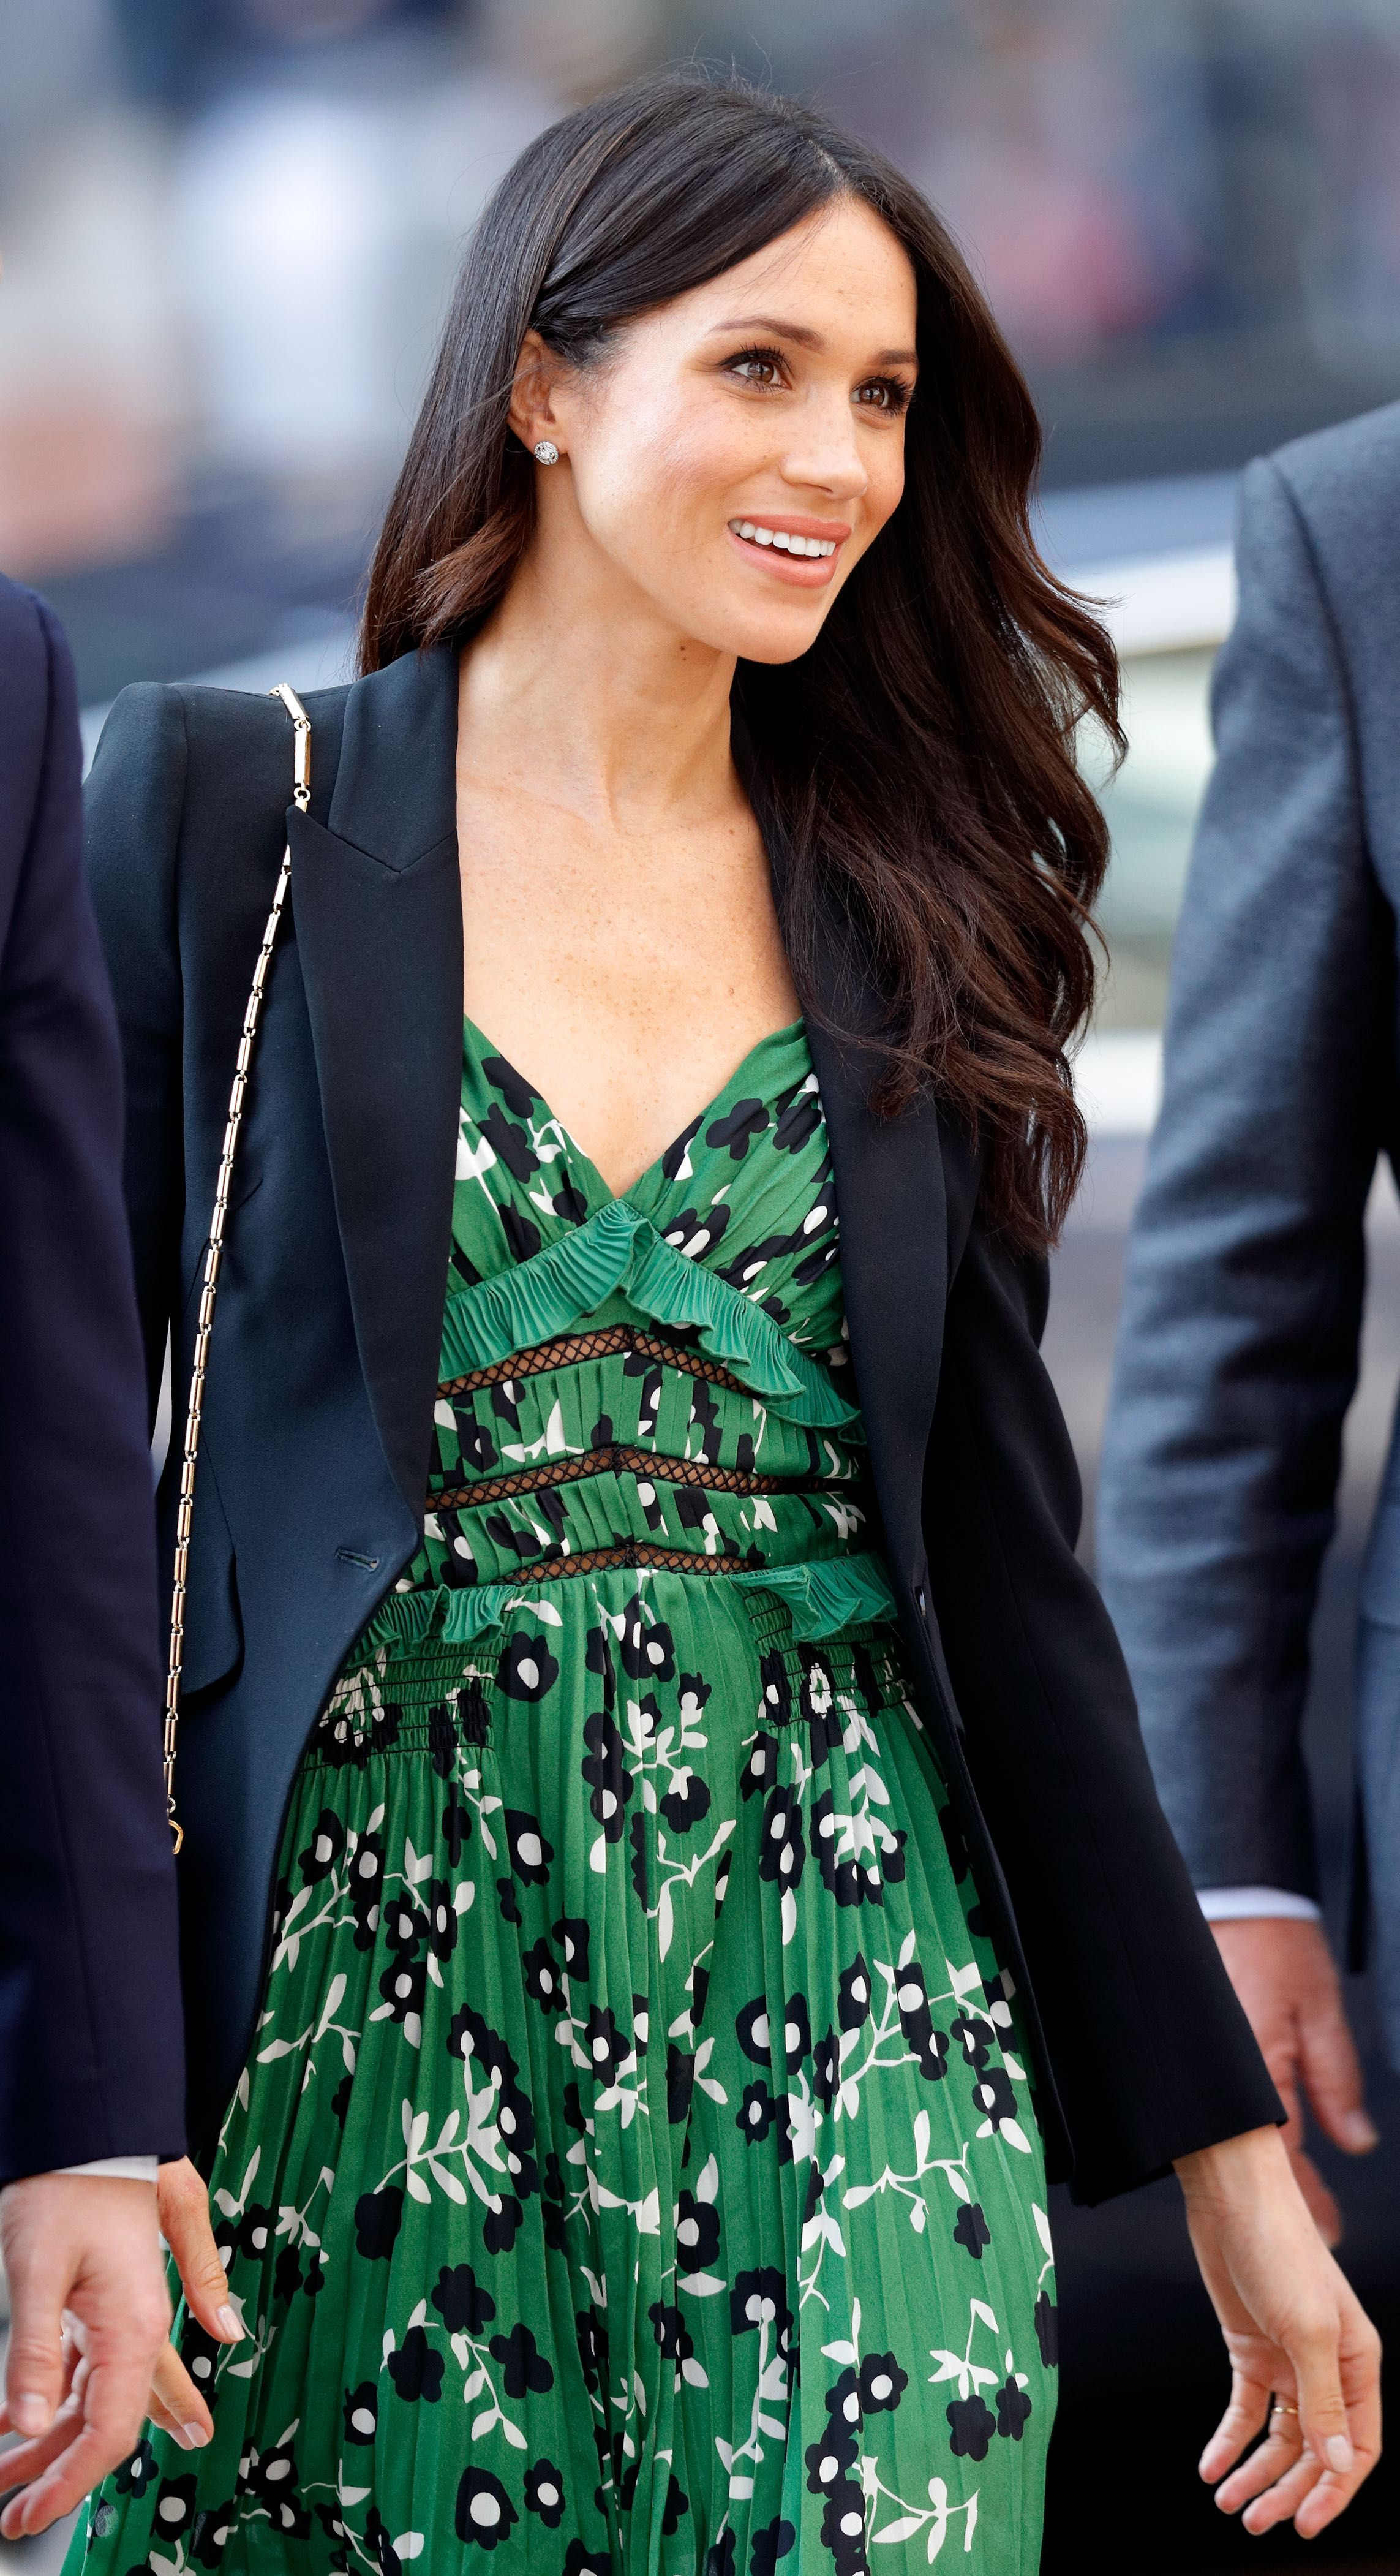 The One Color Meghan Markle Is Obsessed With